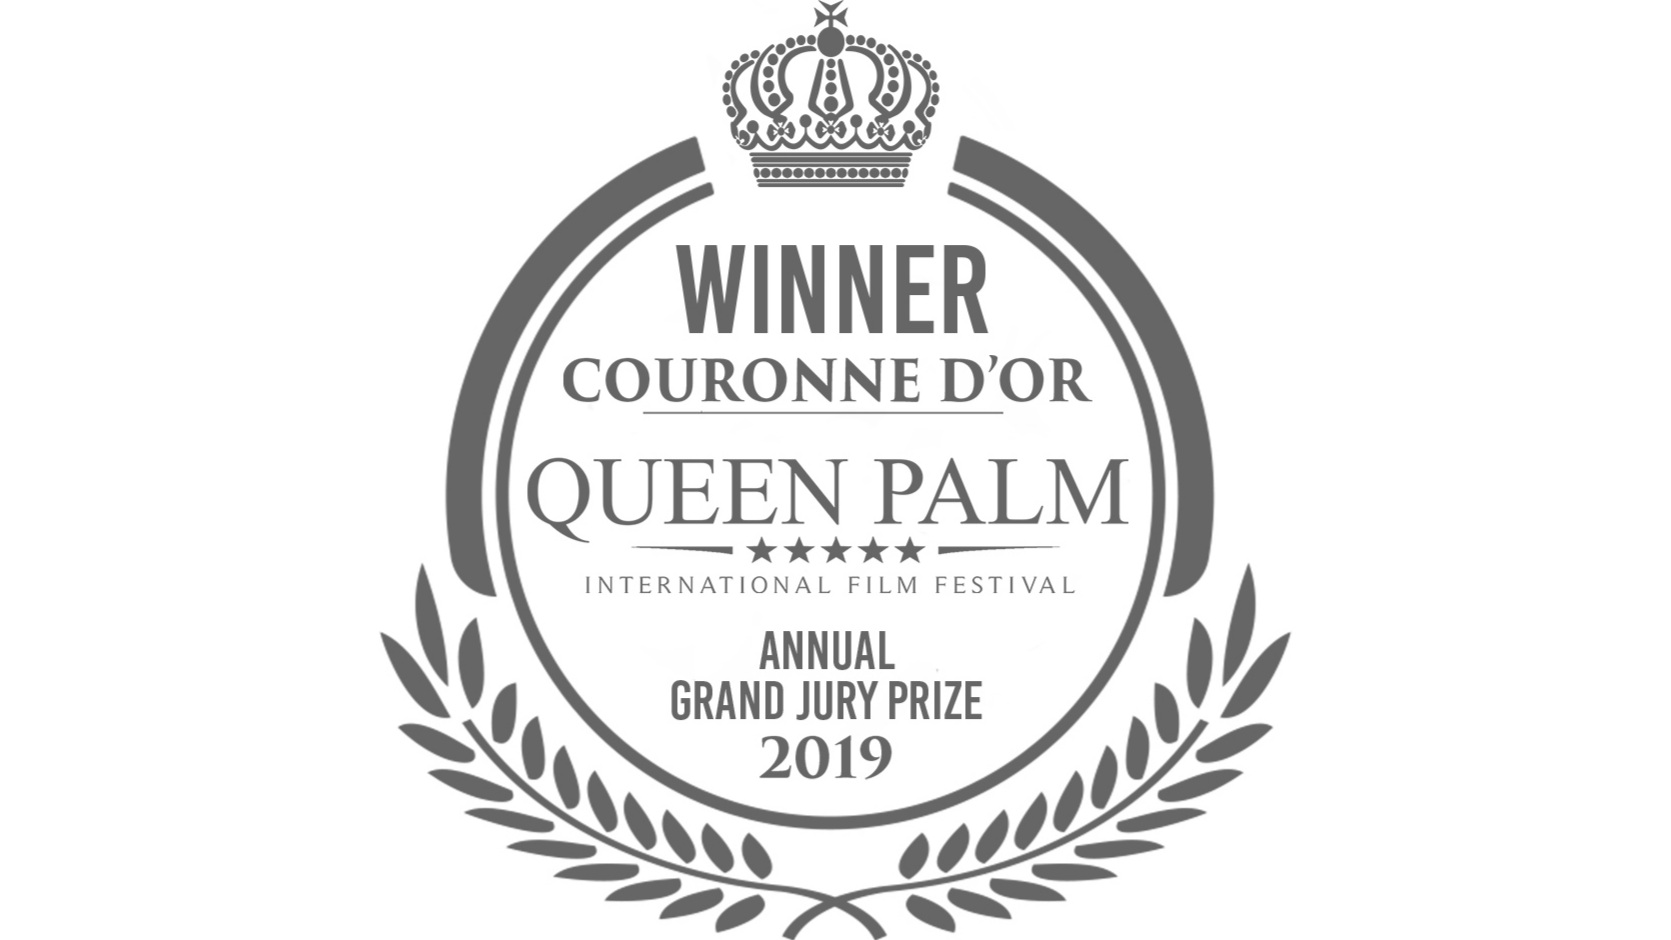 The Critic_QPIFF Couronne d'Or Grand Jury Prize (Grey).jpg